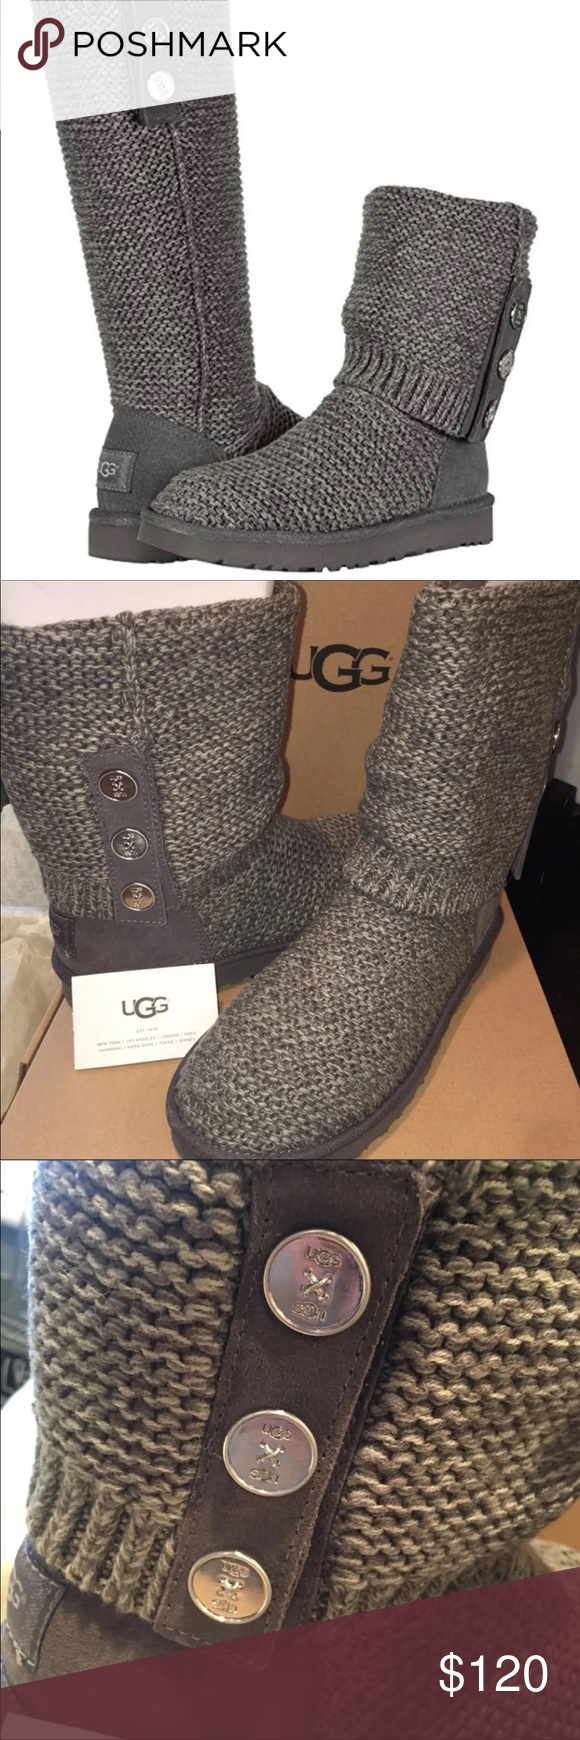 4a7b0f9af6d New in Box UGG Purl Cardy Knit Boots Brand new in box UGG Australia ...